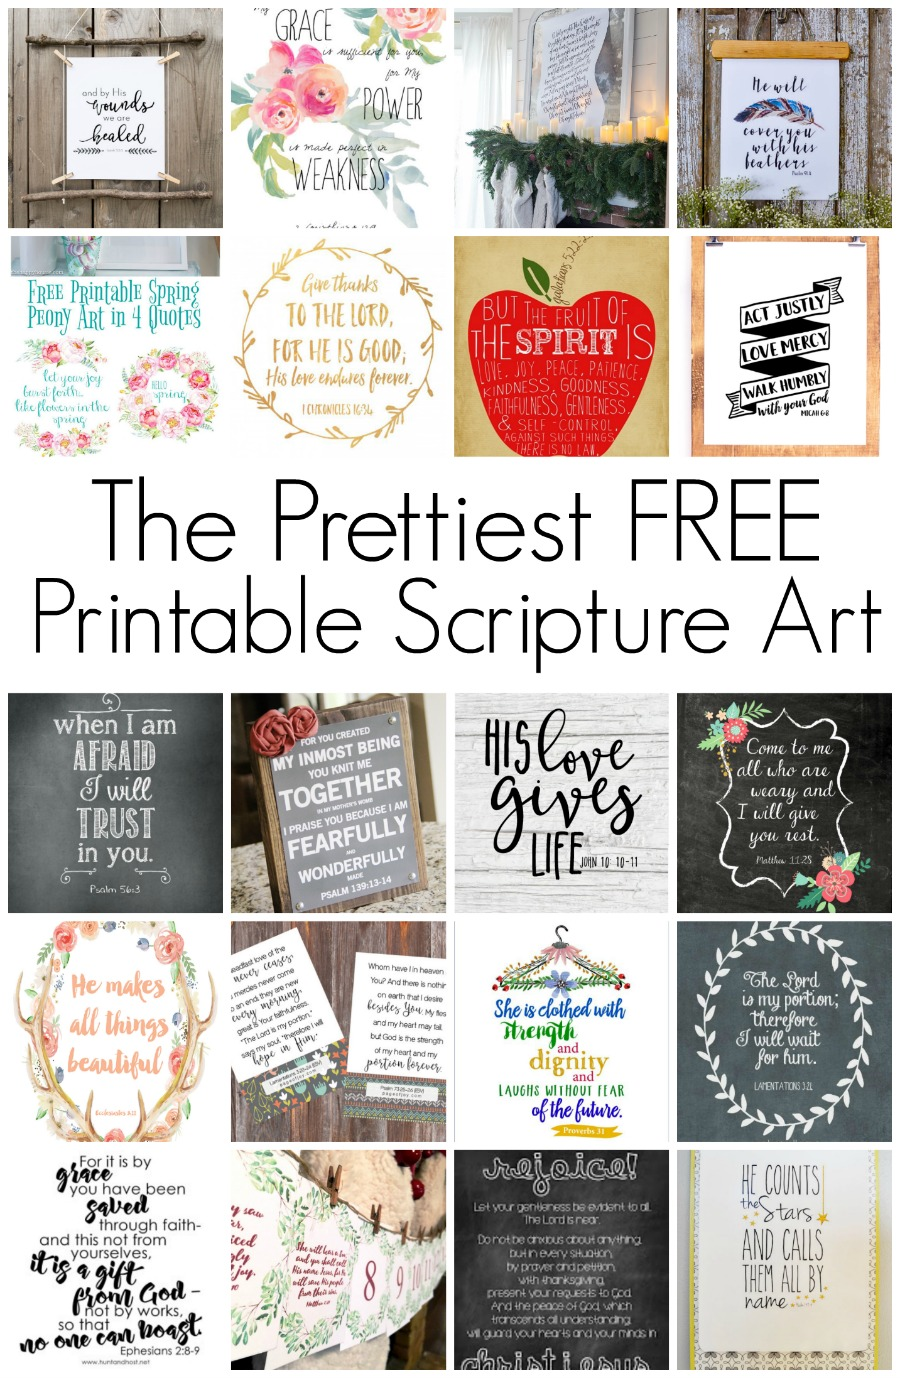 Adaptable image with regard to free printable bible verses to frame